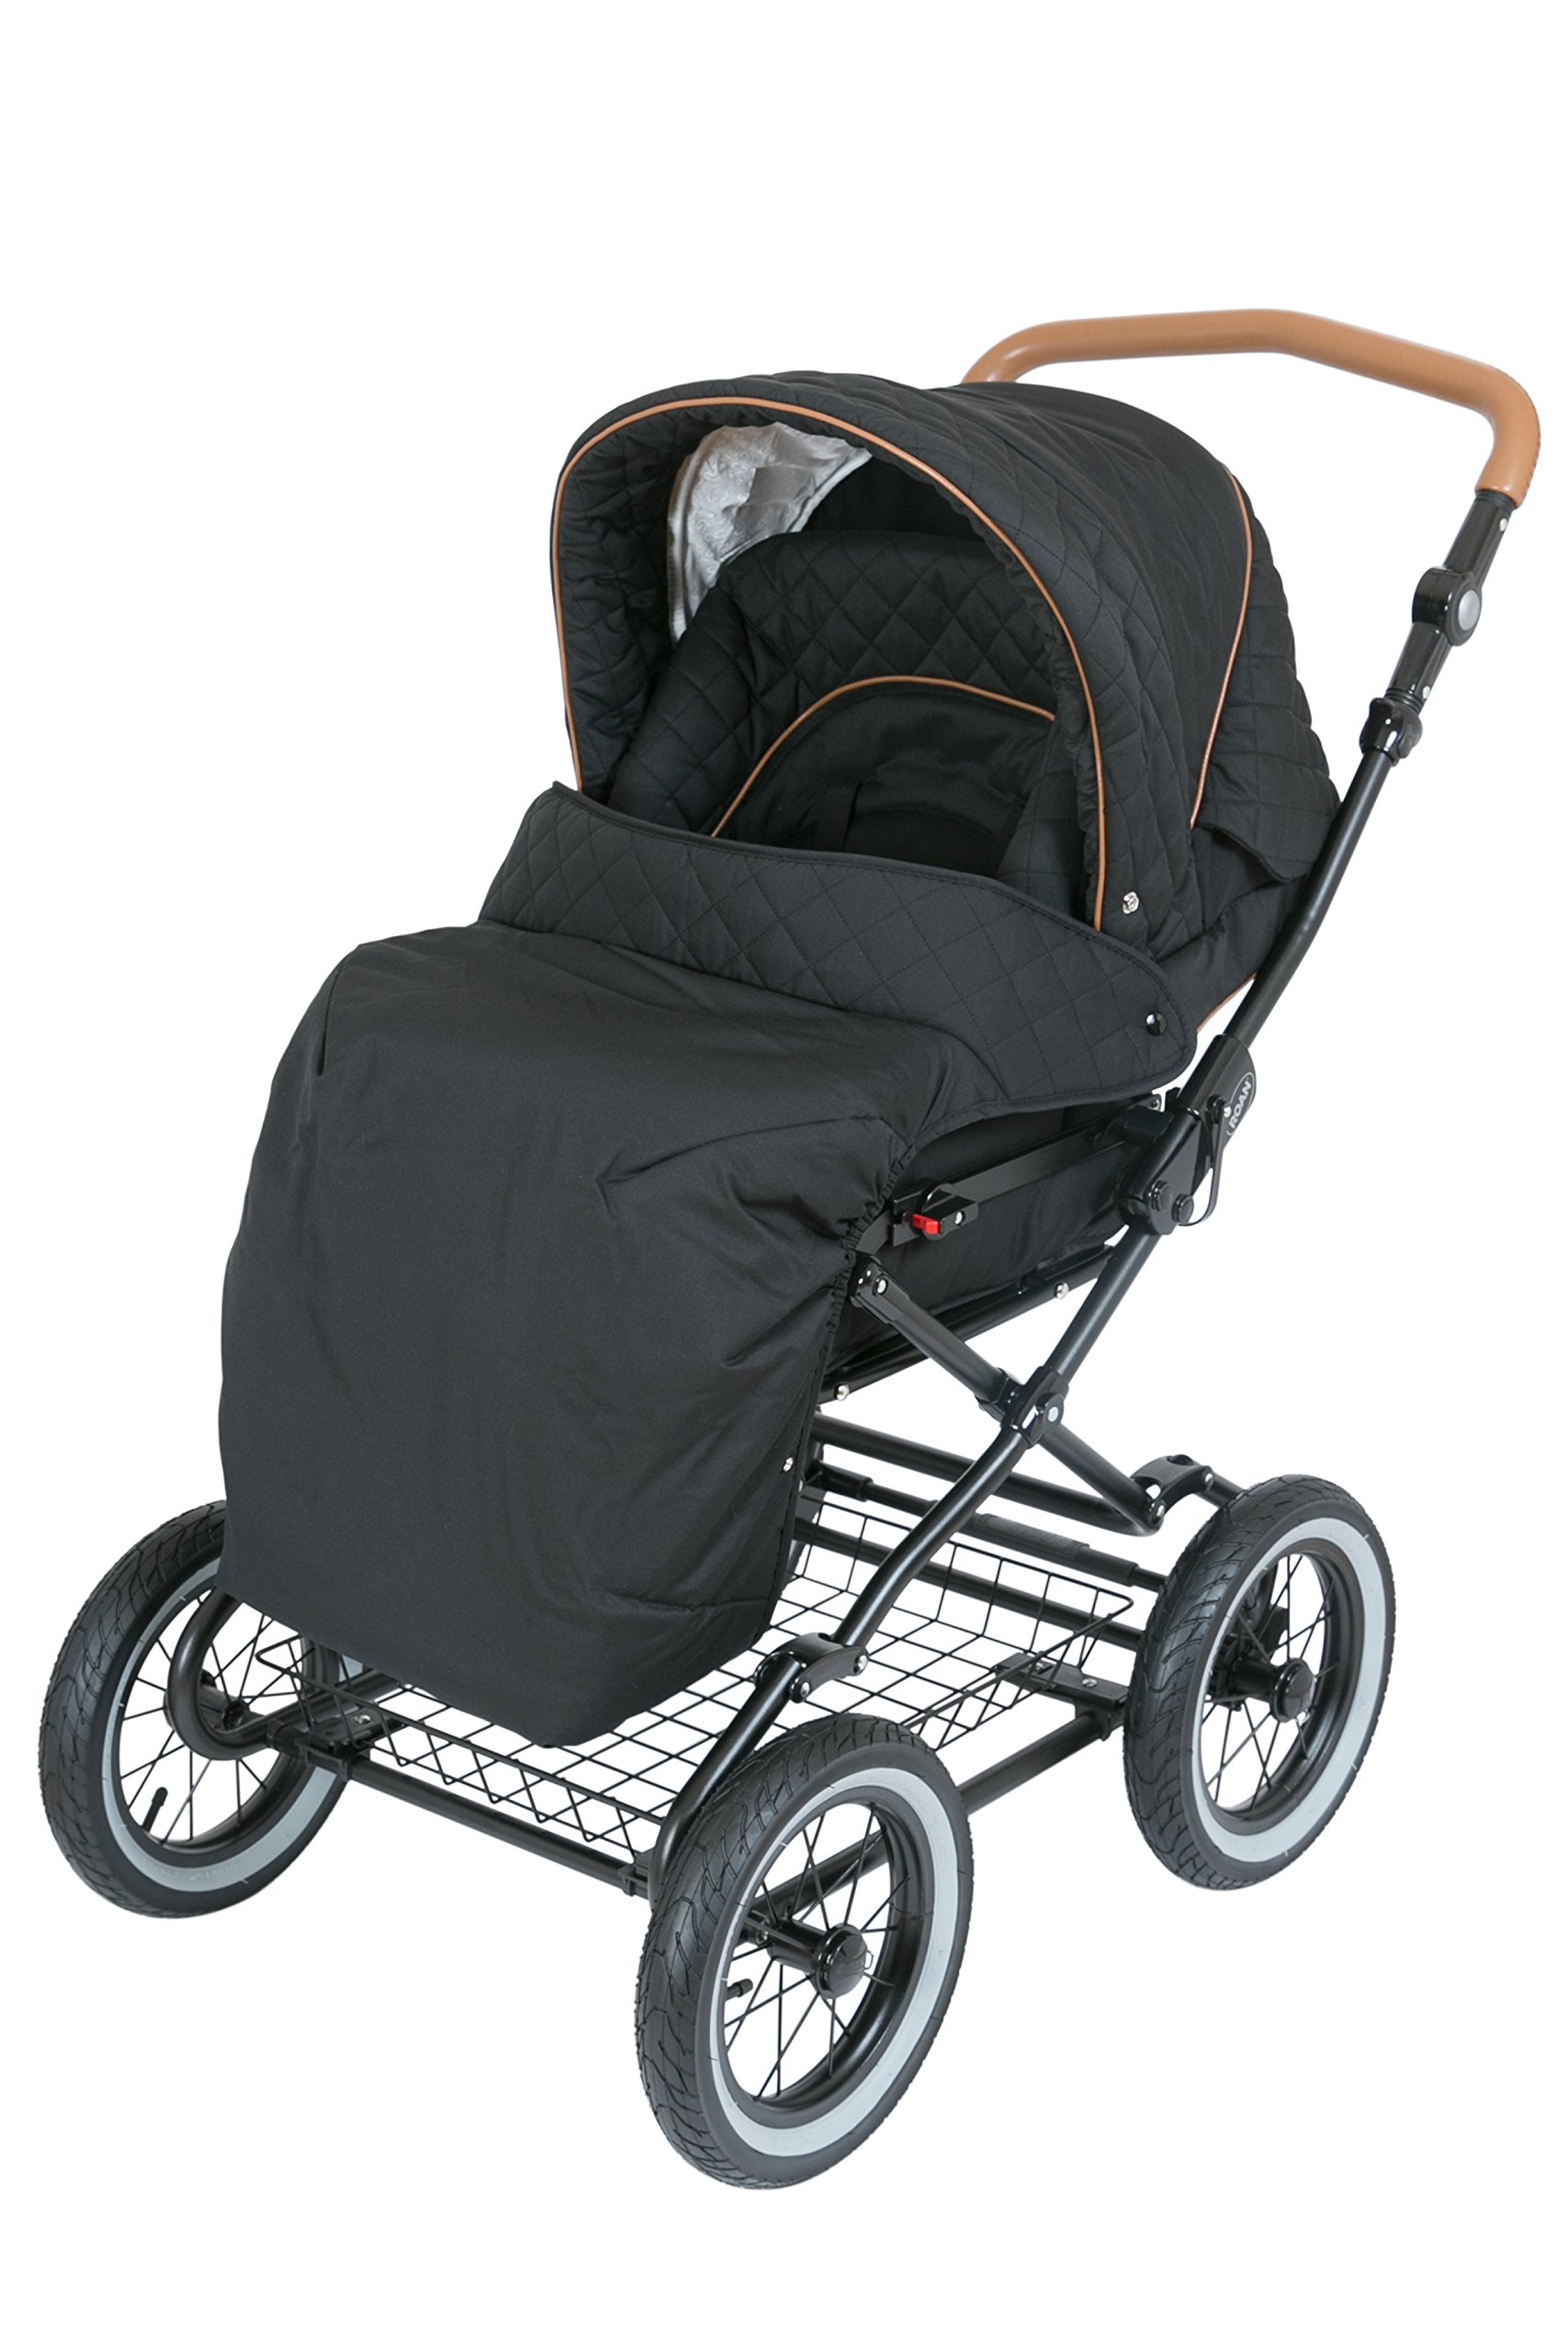 Luxury Roan Kortina 2-in-1 Pram Stroller Pushchair with Big Baby Bassinet and Toddler Reclining Seat with Five Point Safety System UV Proof Canopy and Storage Basket for child up to 3 year (graphite) by ROAN (Image #6)